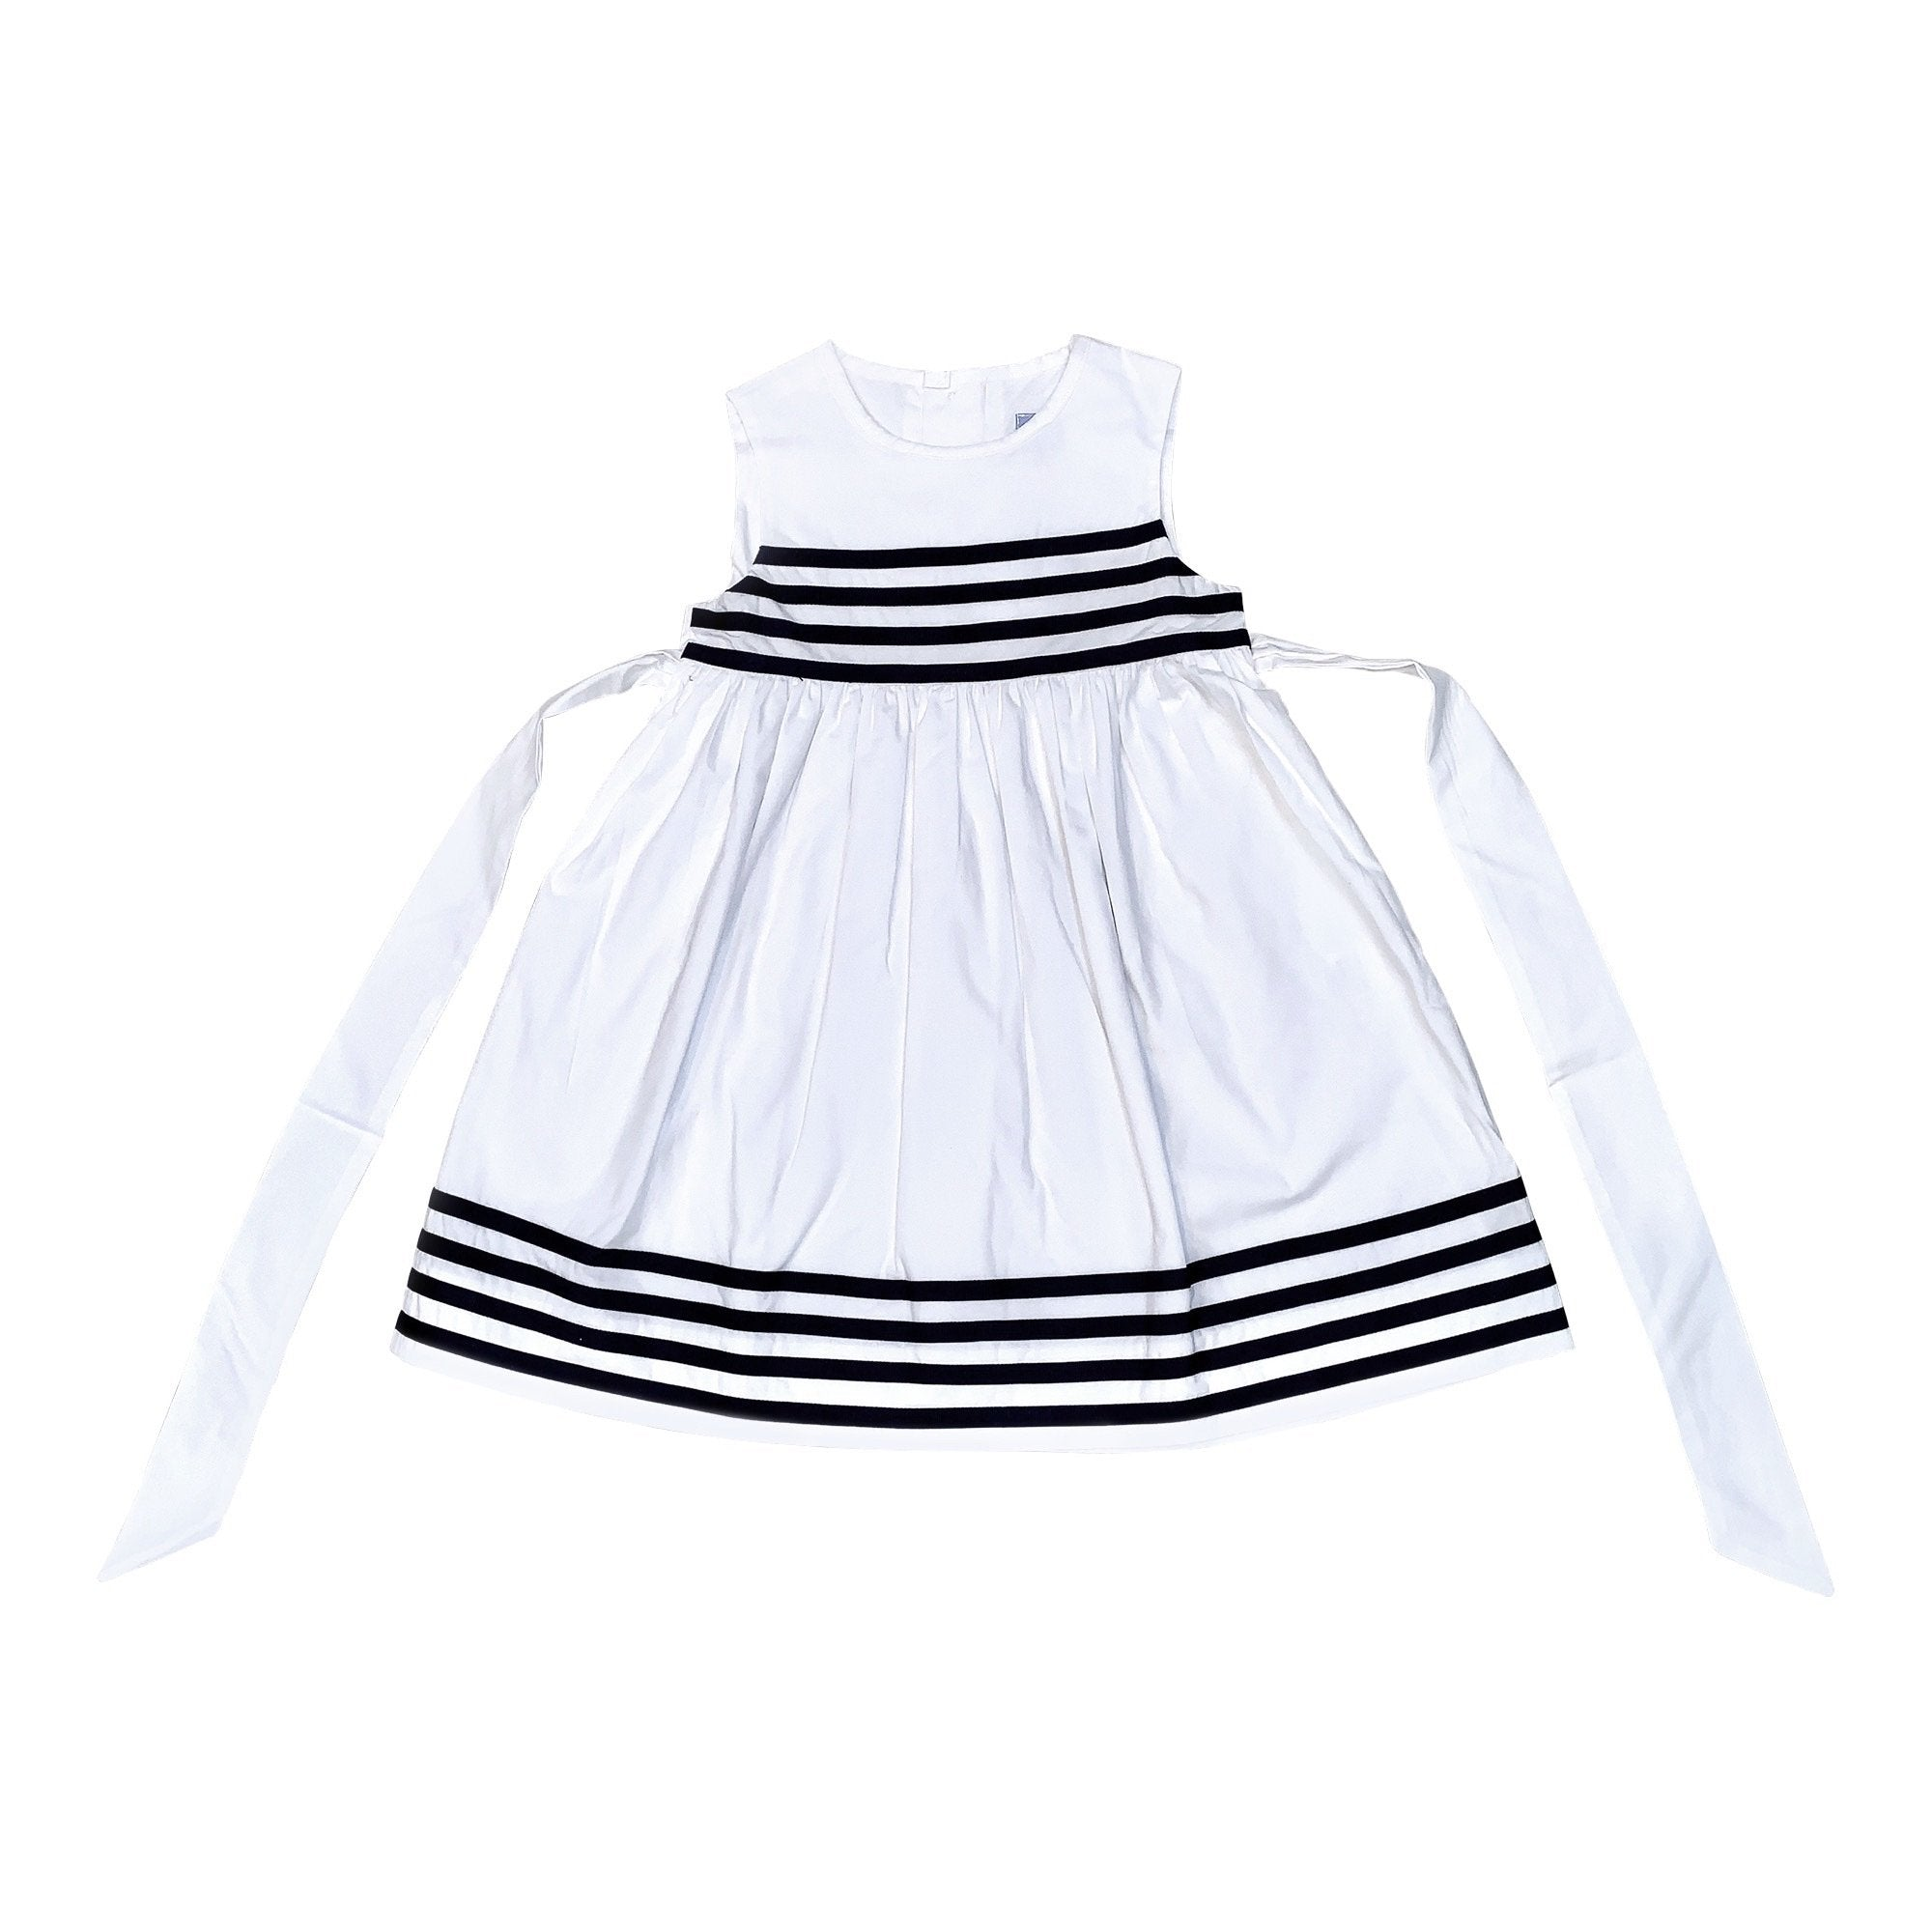 CHLOE RIBBON DRESS IN WHITE AND NAVY